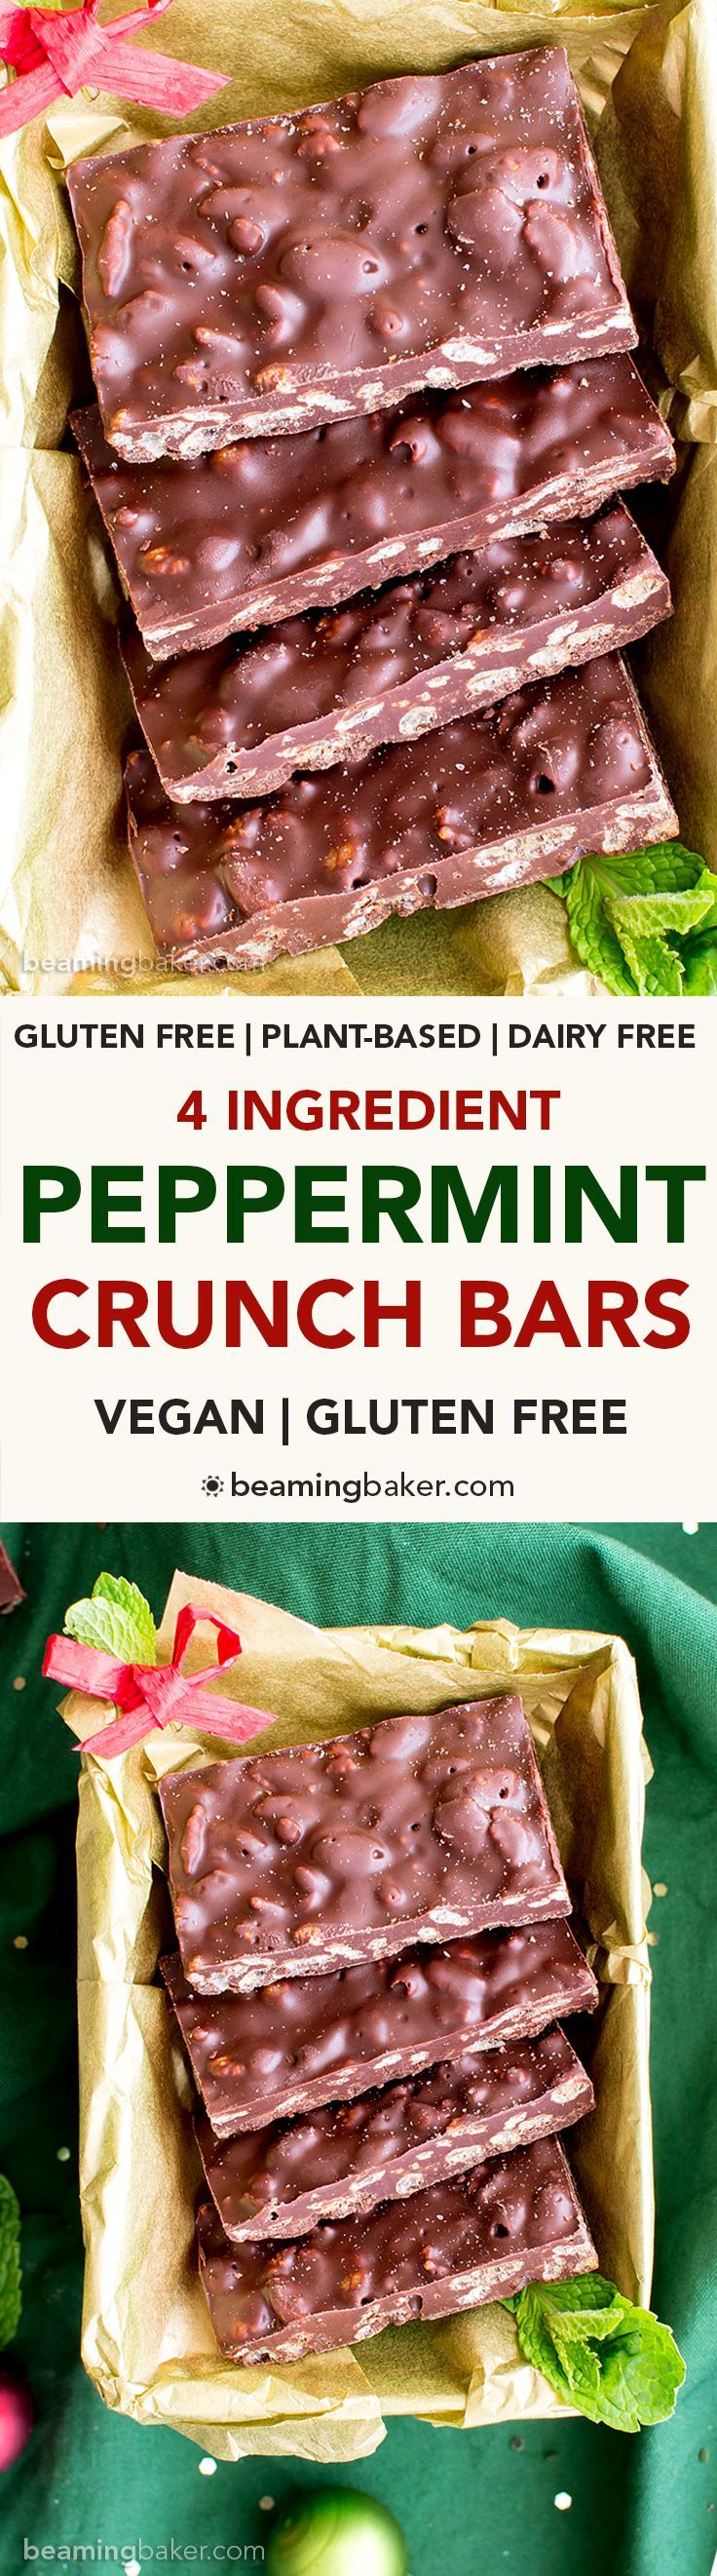 4 Ingredient Peppermint Chocolate Crunch Bars (Gluten Free, Vegan, Dairy-Free): a one bowl, 4-ingredient recipe for crispy, cool mint crunch bars perfect for the holidays!